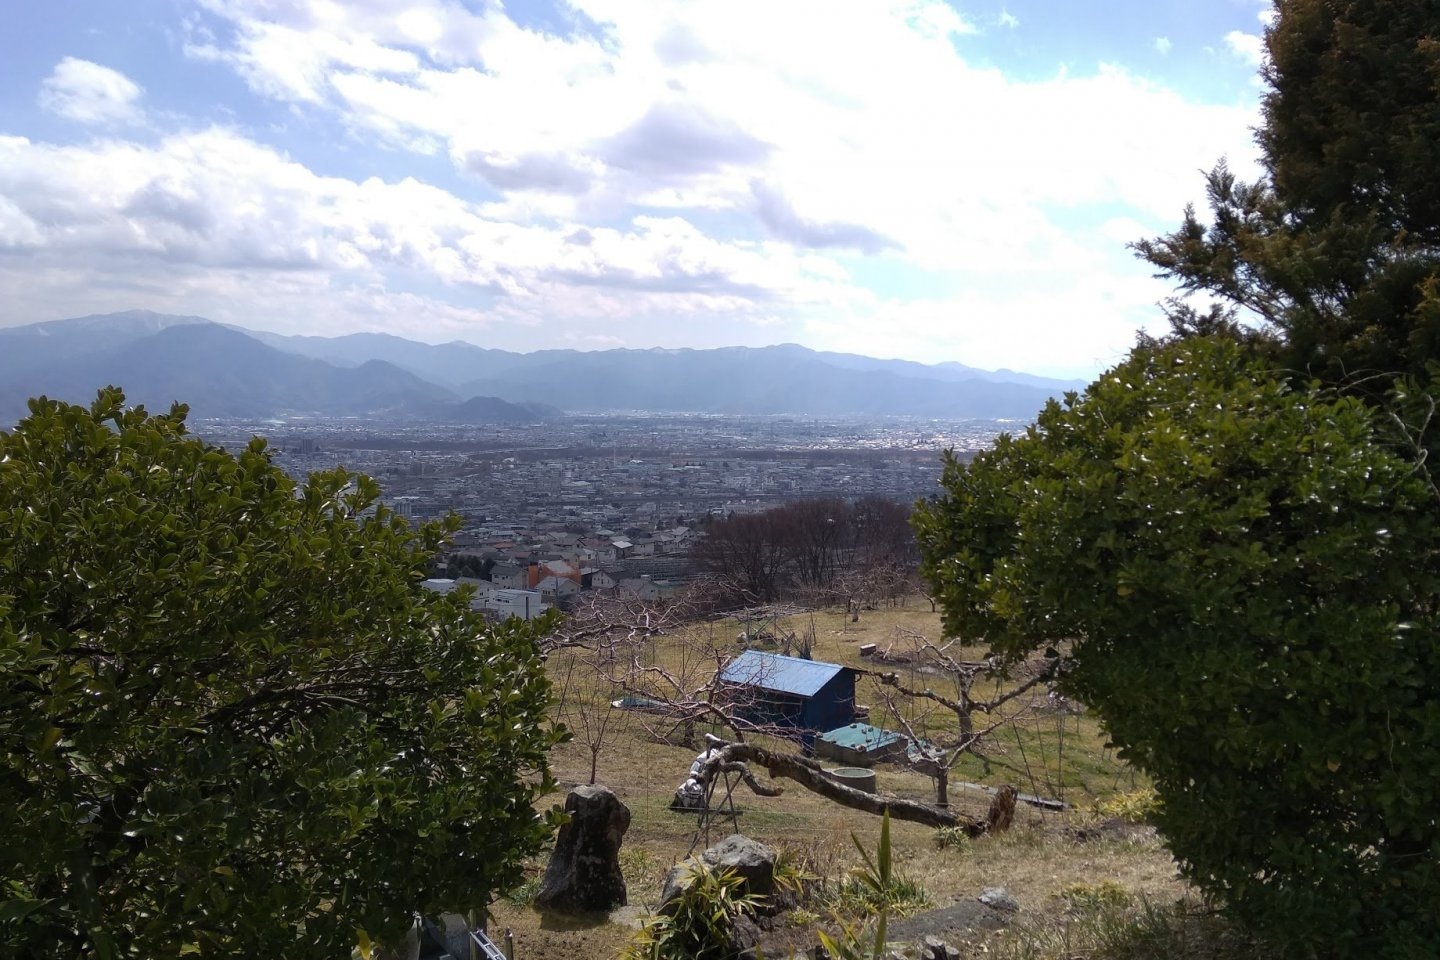 Nagano from above